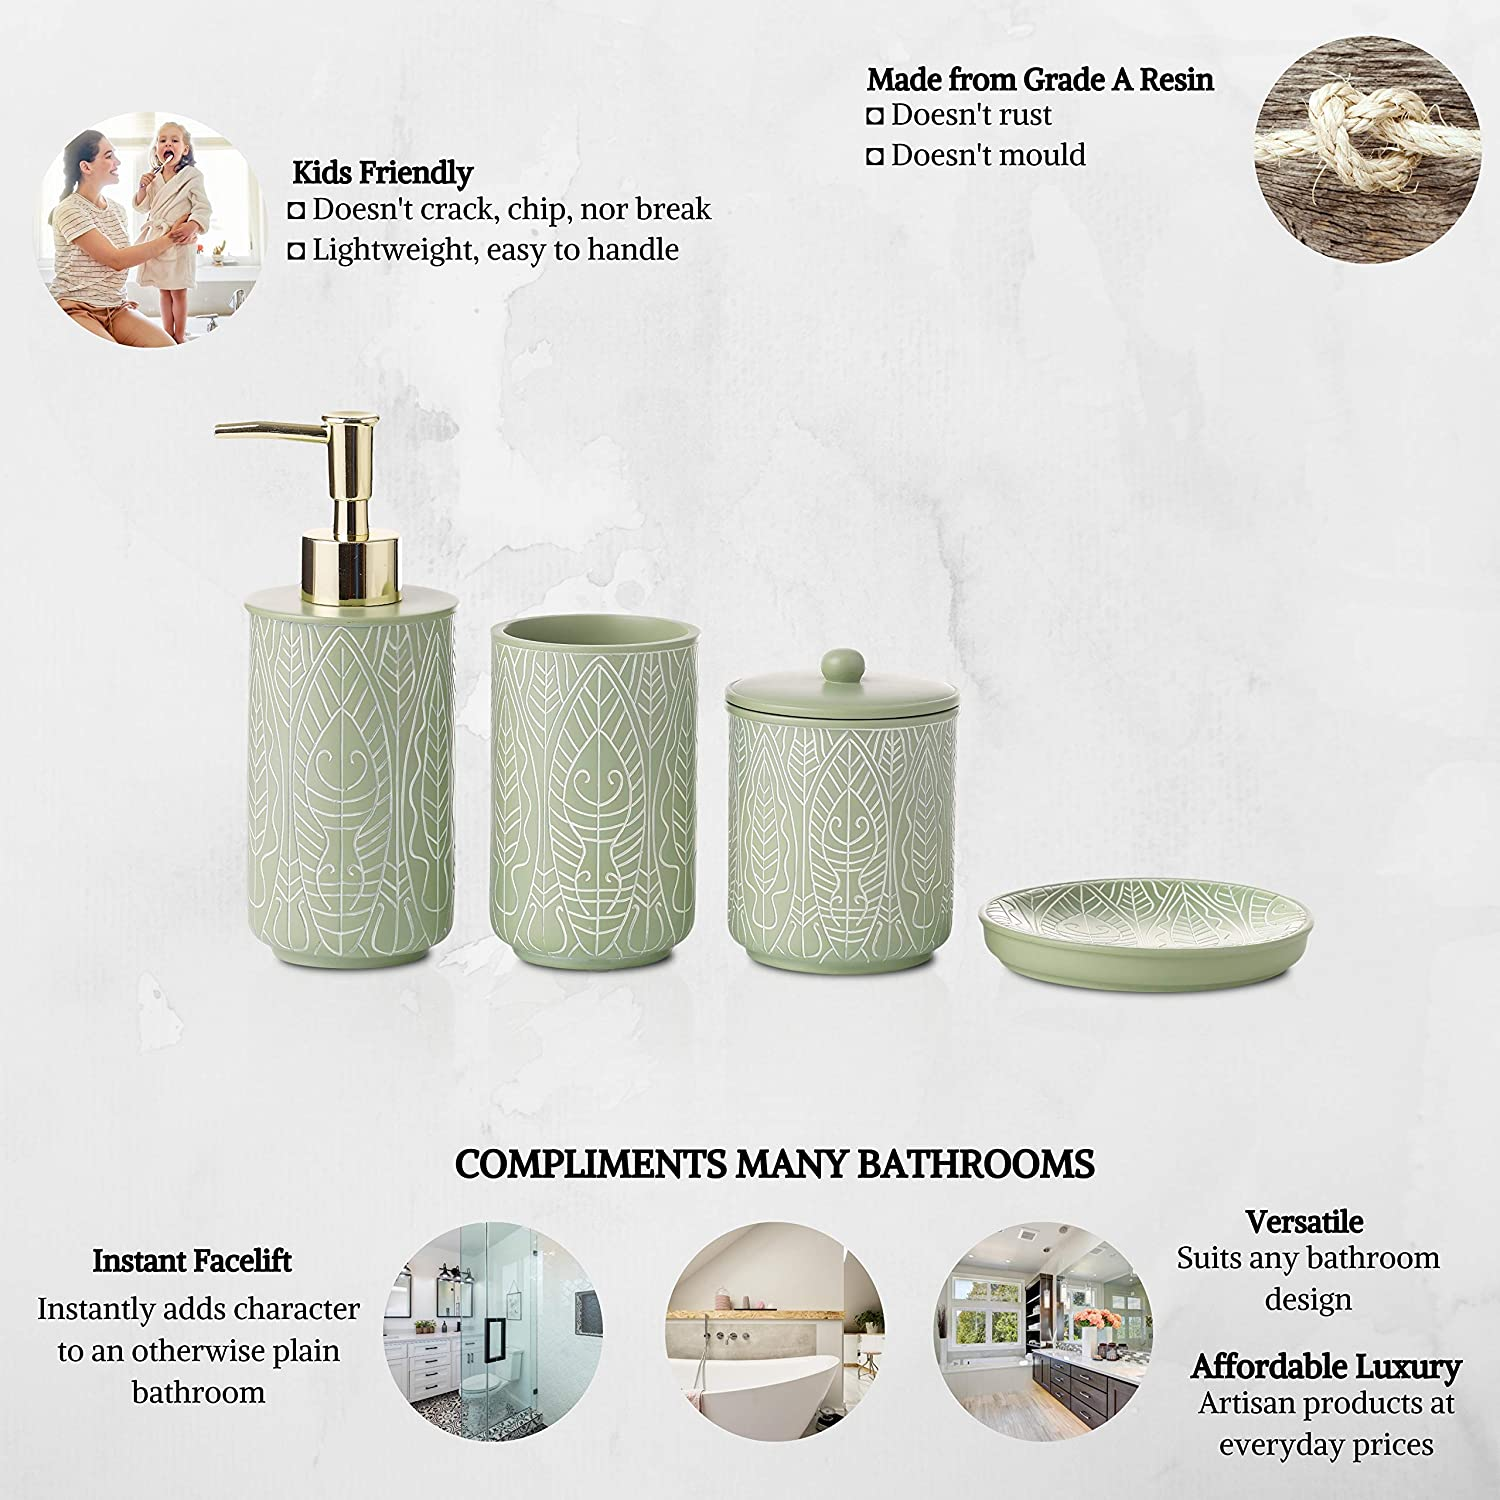 VIRTUNE Premium Pastel Green Bathroom Accessory Set. Home and Apartment Essentials Including Hand Pump Soap Dispenser, Soap Dish, Toothbrush Holder, and Tumbler Cup. Modern Bathroom Decor: Home & Kitchen